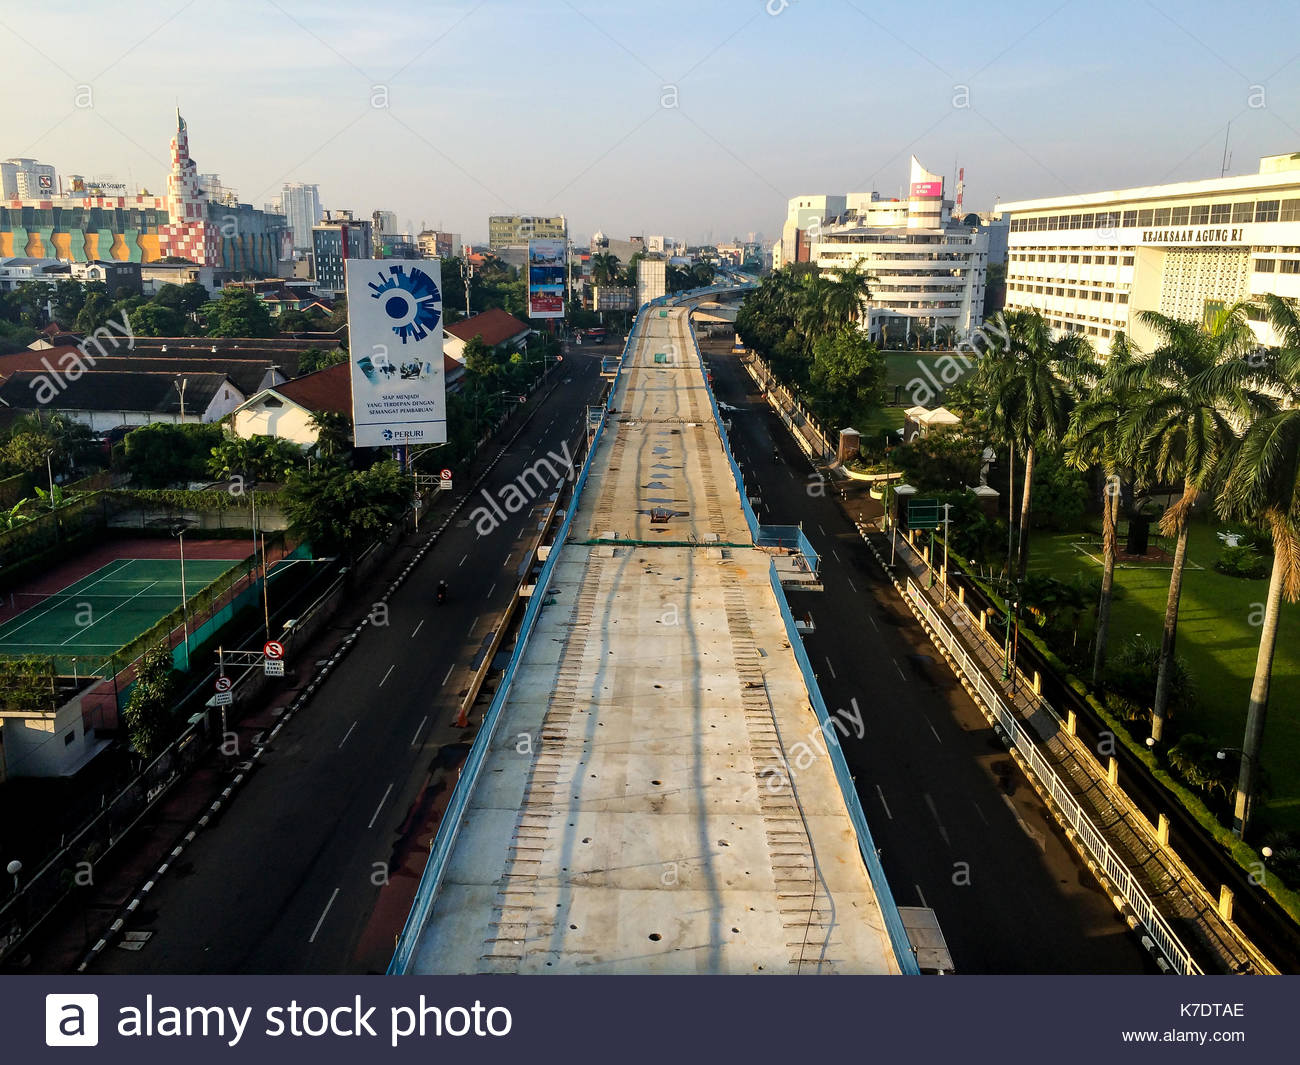 Mrt Construction In Jakarta Indonesia Stock Photo 159500390 Alamy